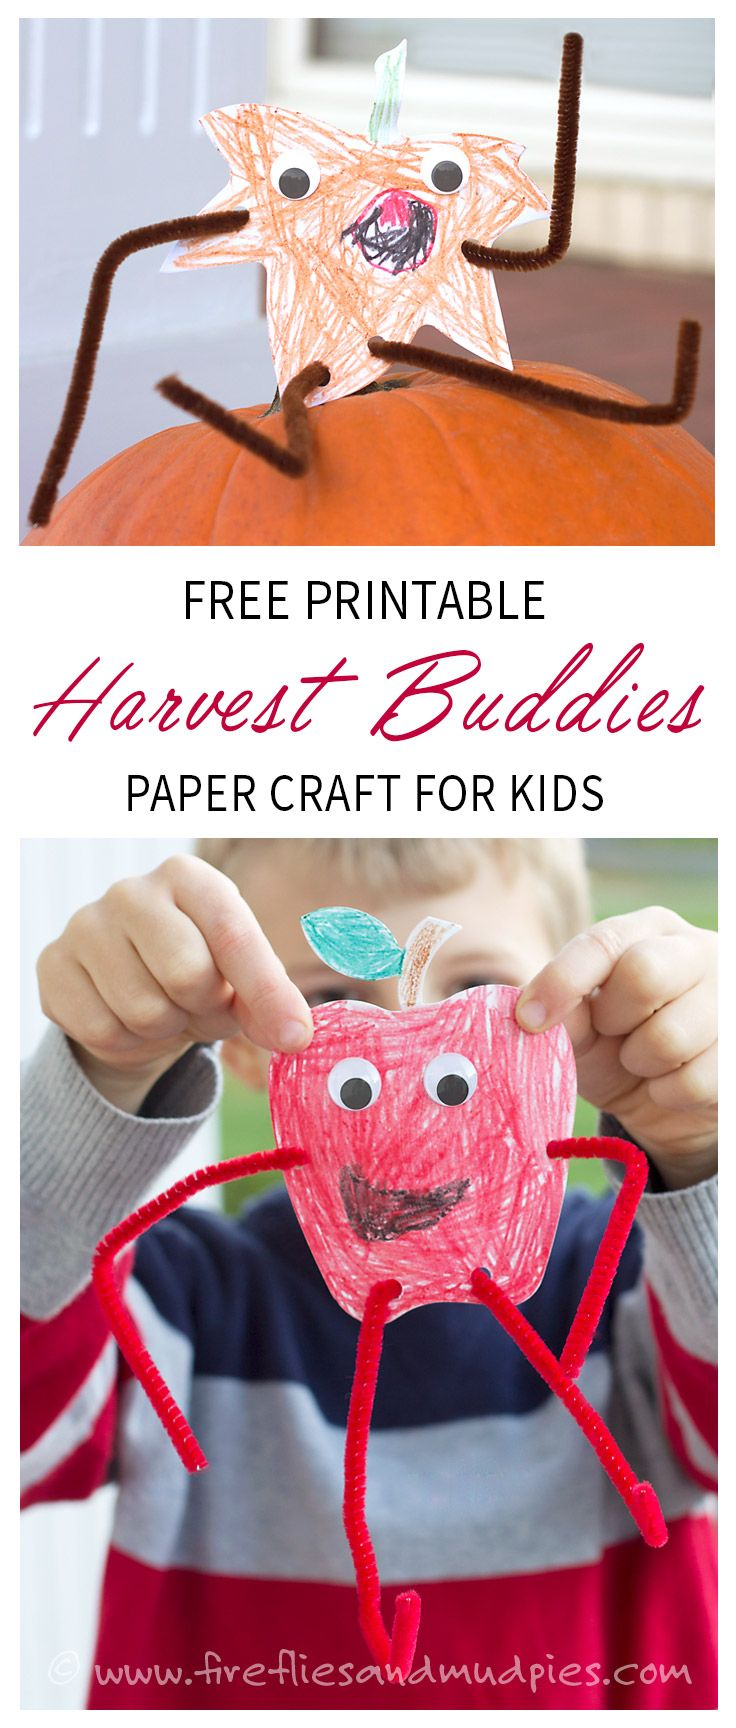 free thanksgiving craft ideas for kids free printable fall craft harvest buddies thanksgiving 7731